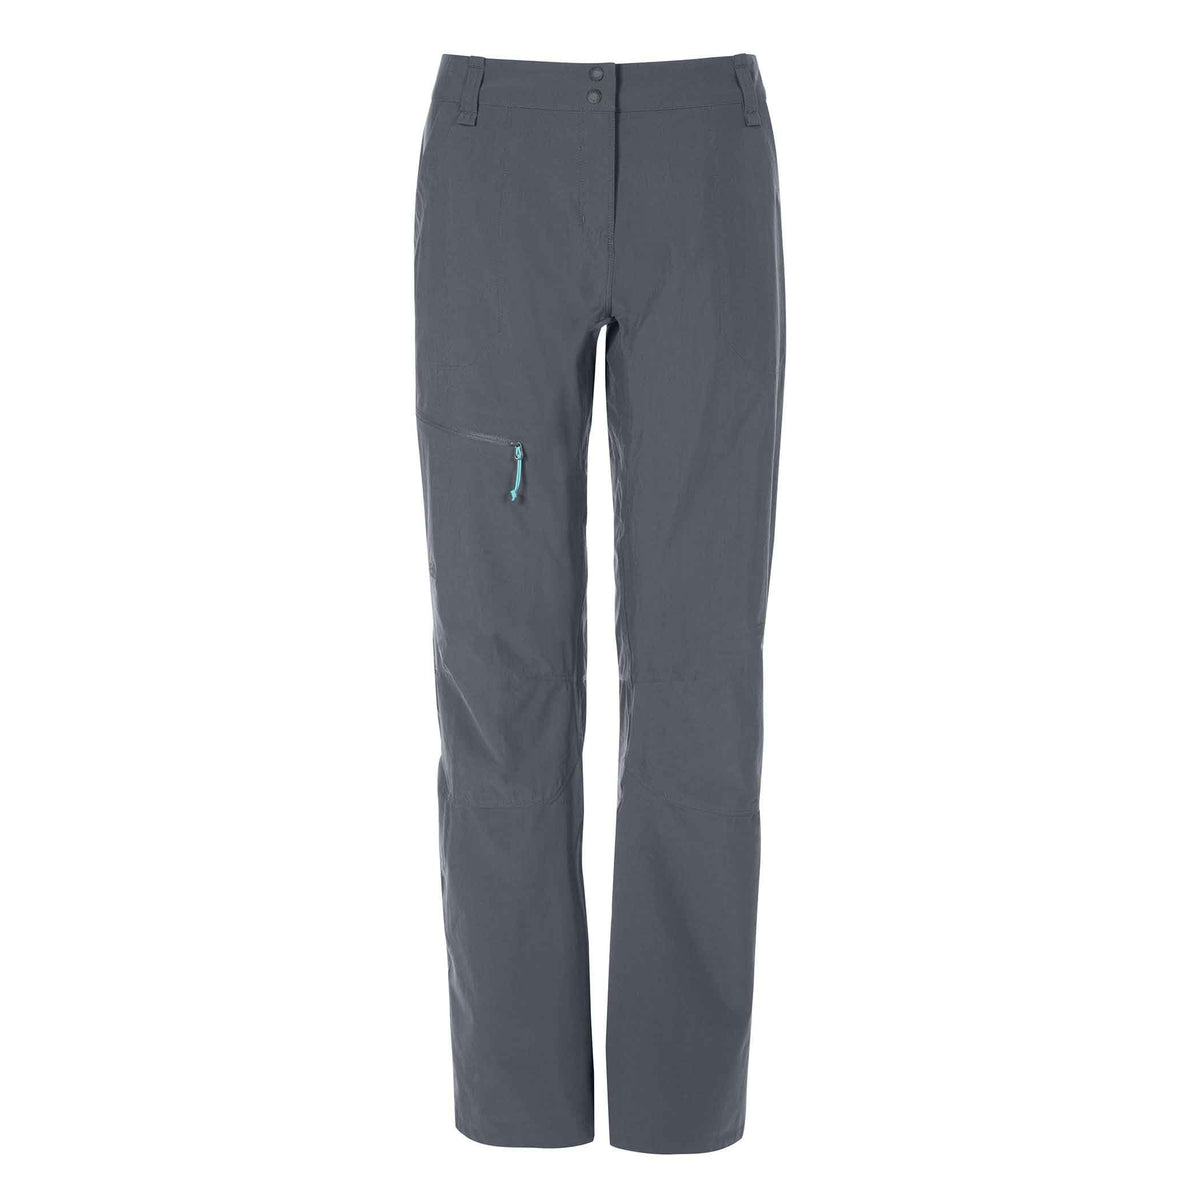 5 Pairs Of Women's Hiking Pants That Don't Totally Suck